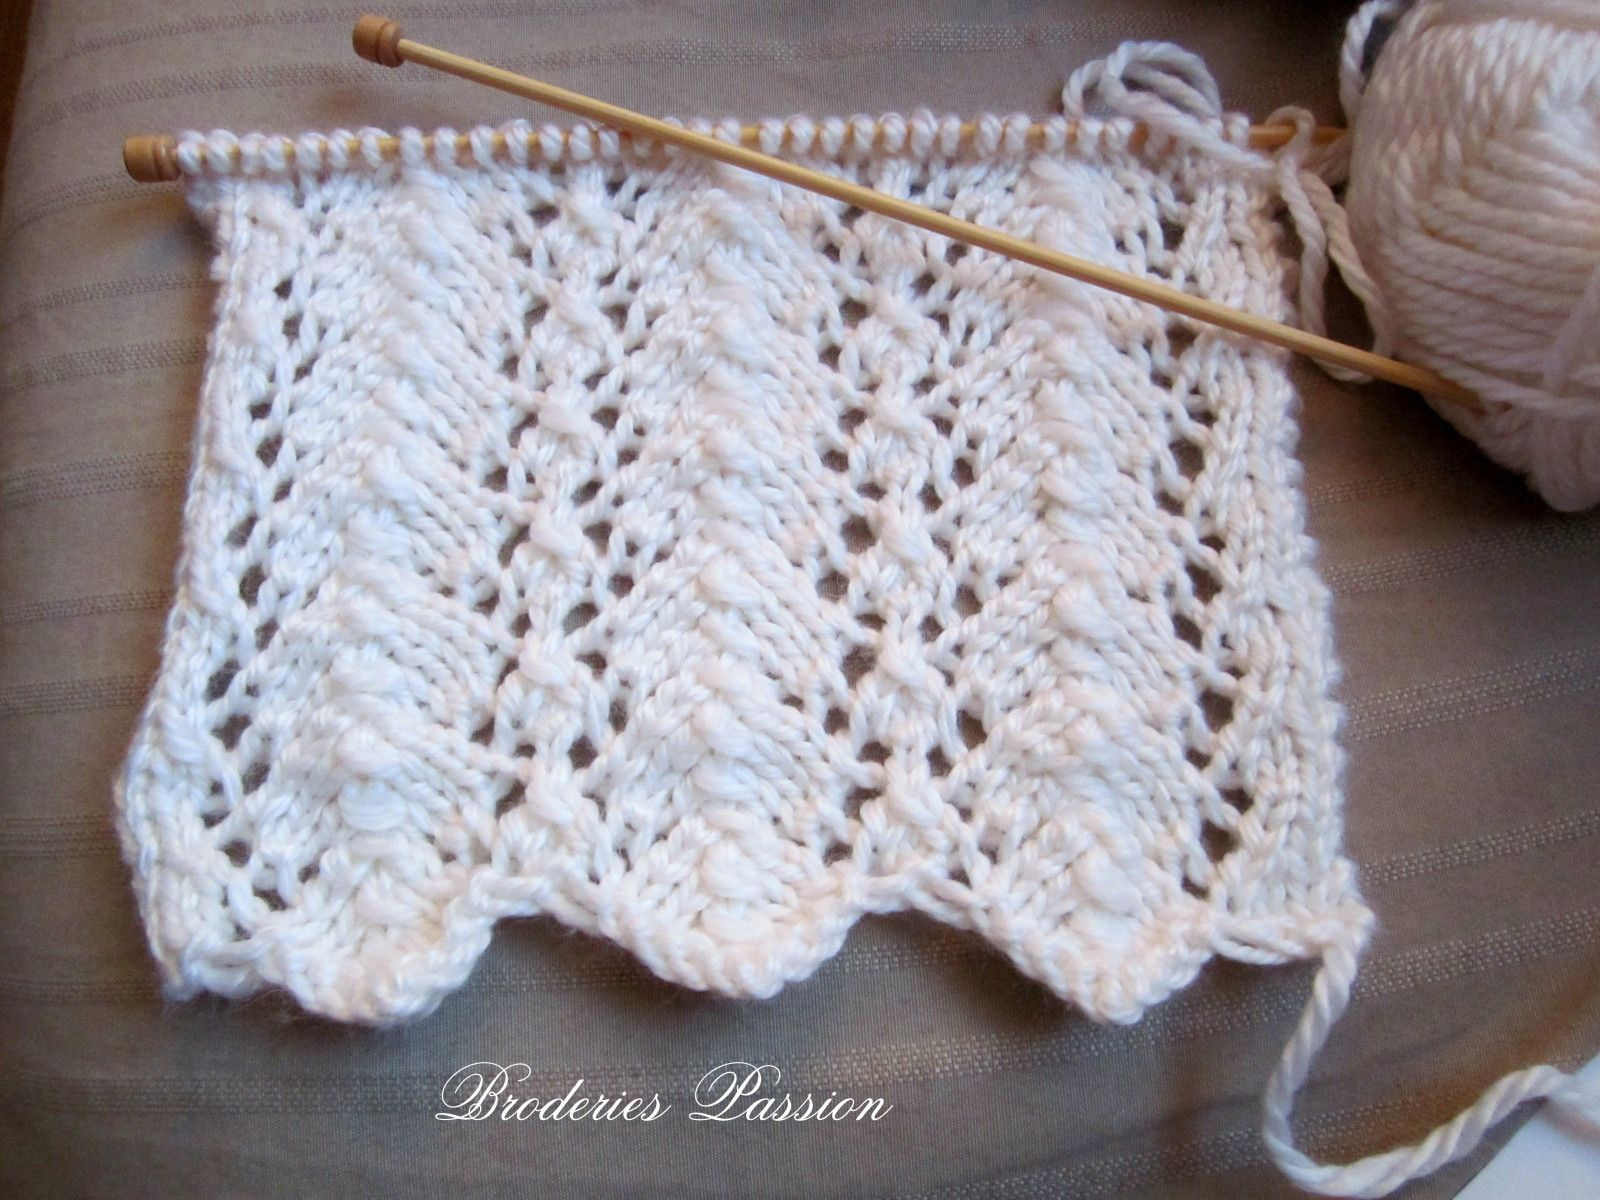 Kal broderies passion martine290 - Broderie sur tricot point mousse ...